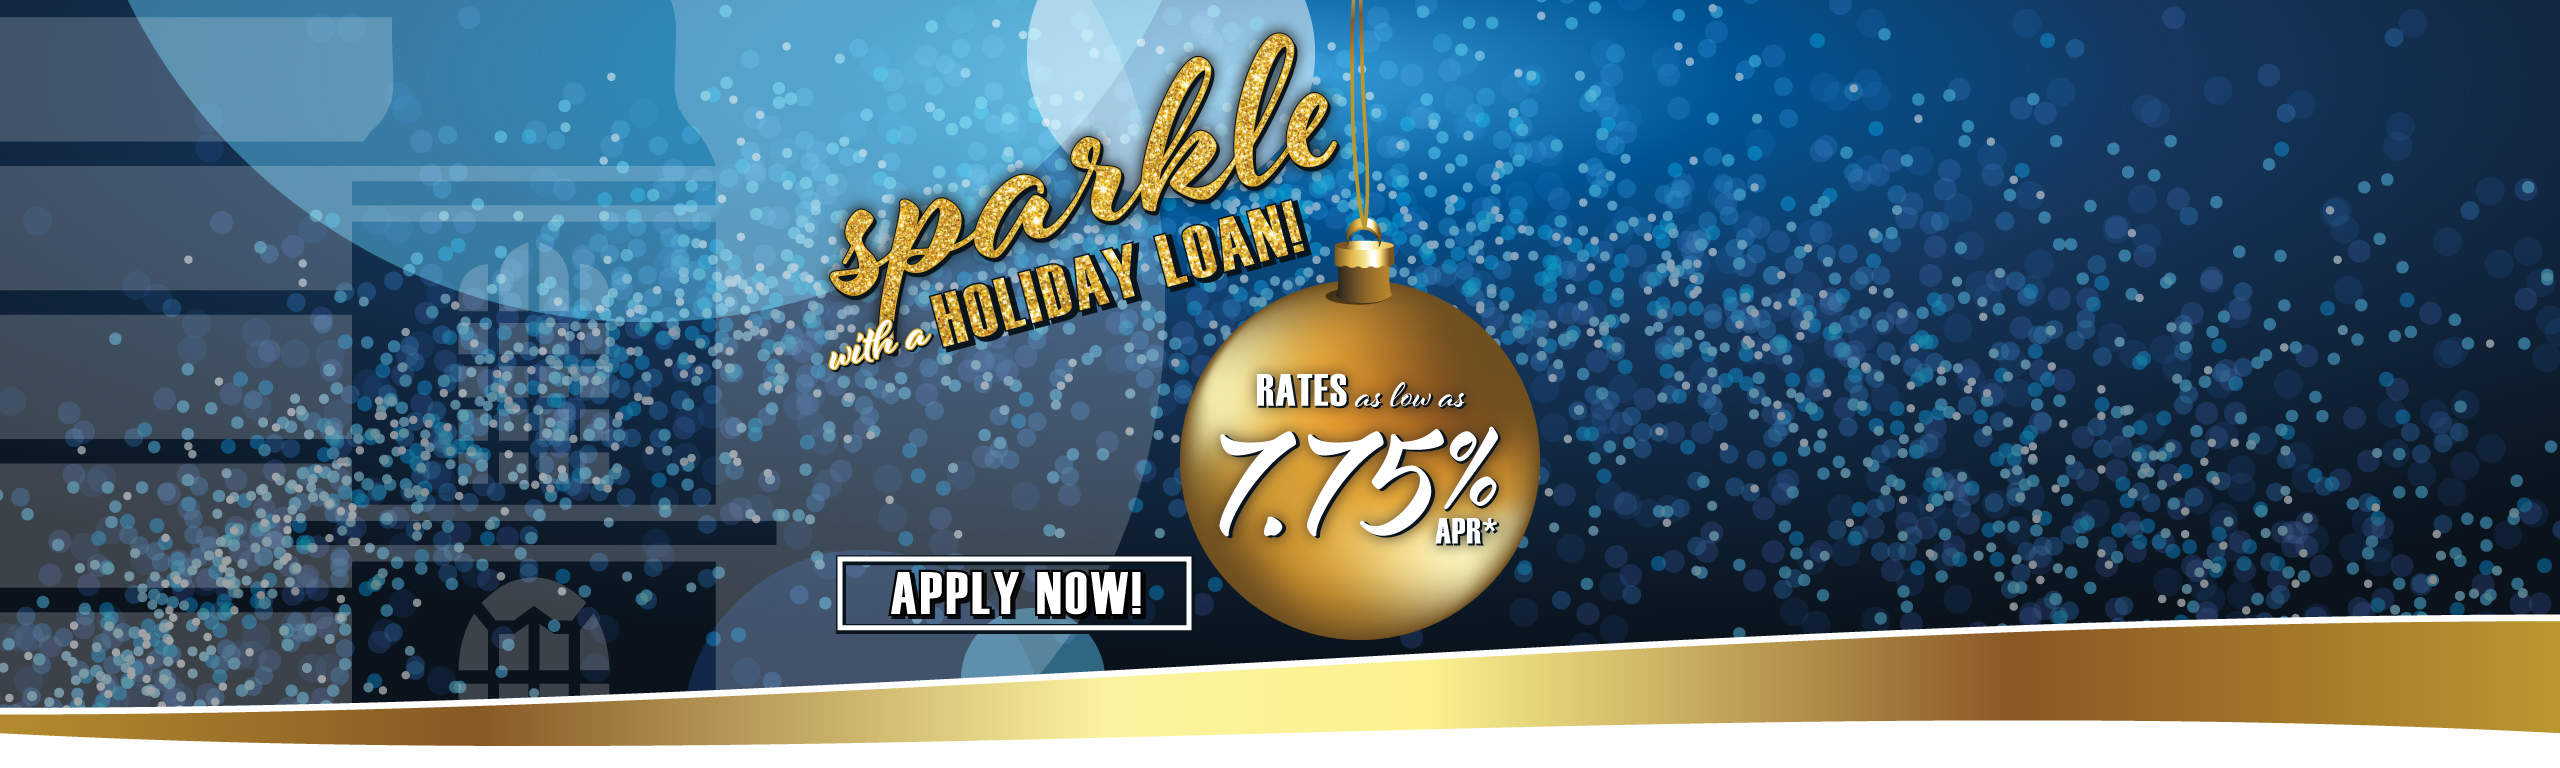 Sparkle with a Holiday Loan Rates as low as 7.75%APR* Apply Now!